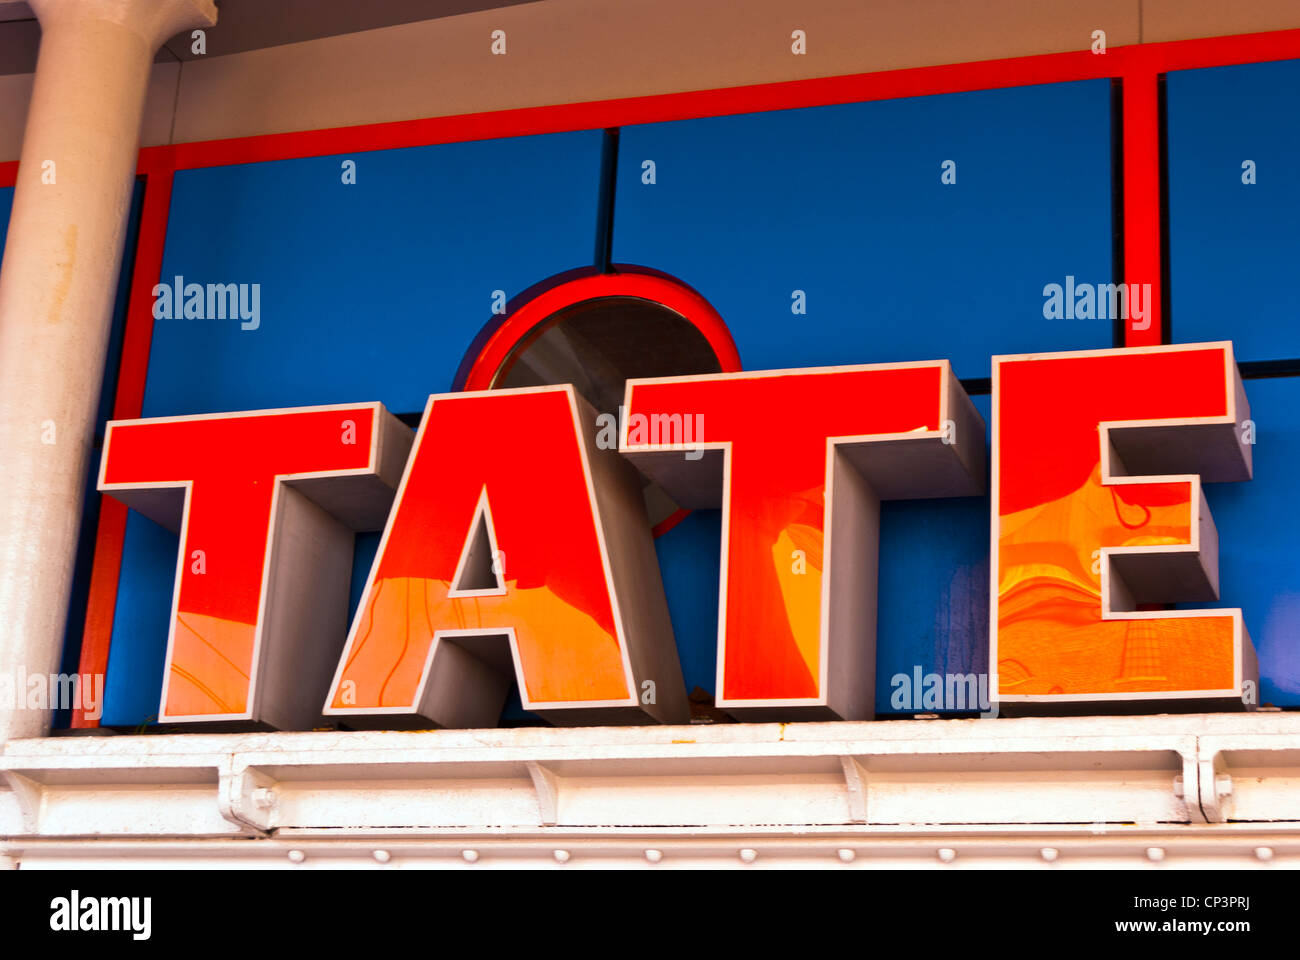 The Tate gallery sign at Liverpool docks, England, UK - Stock Image